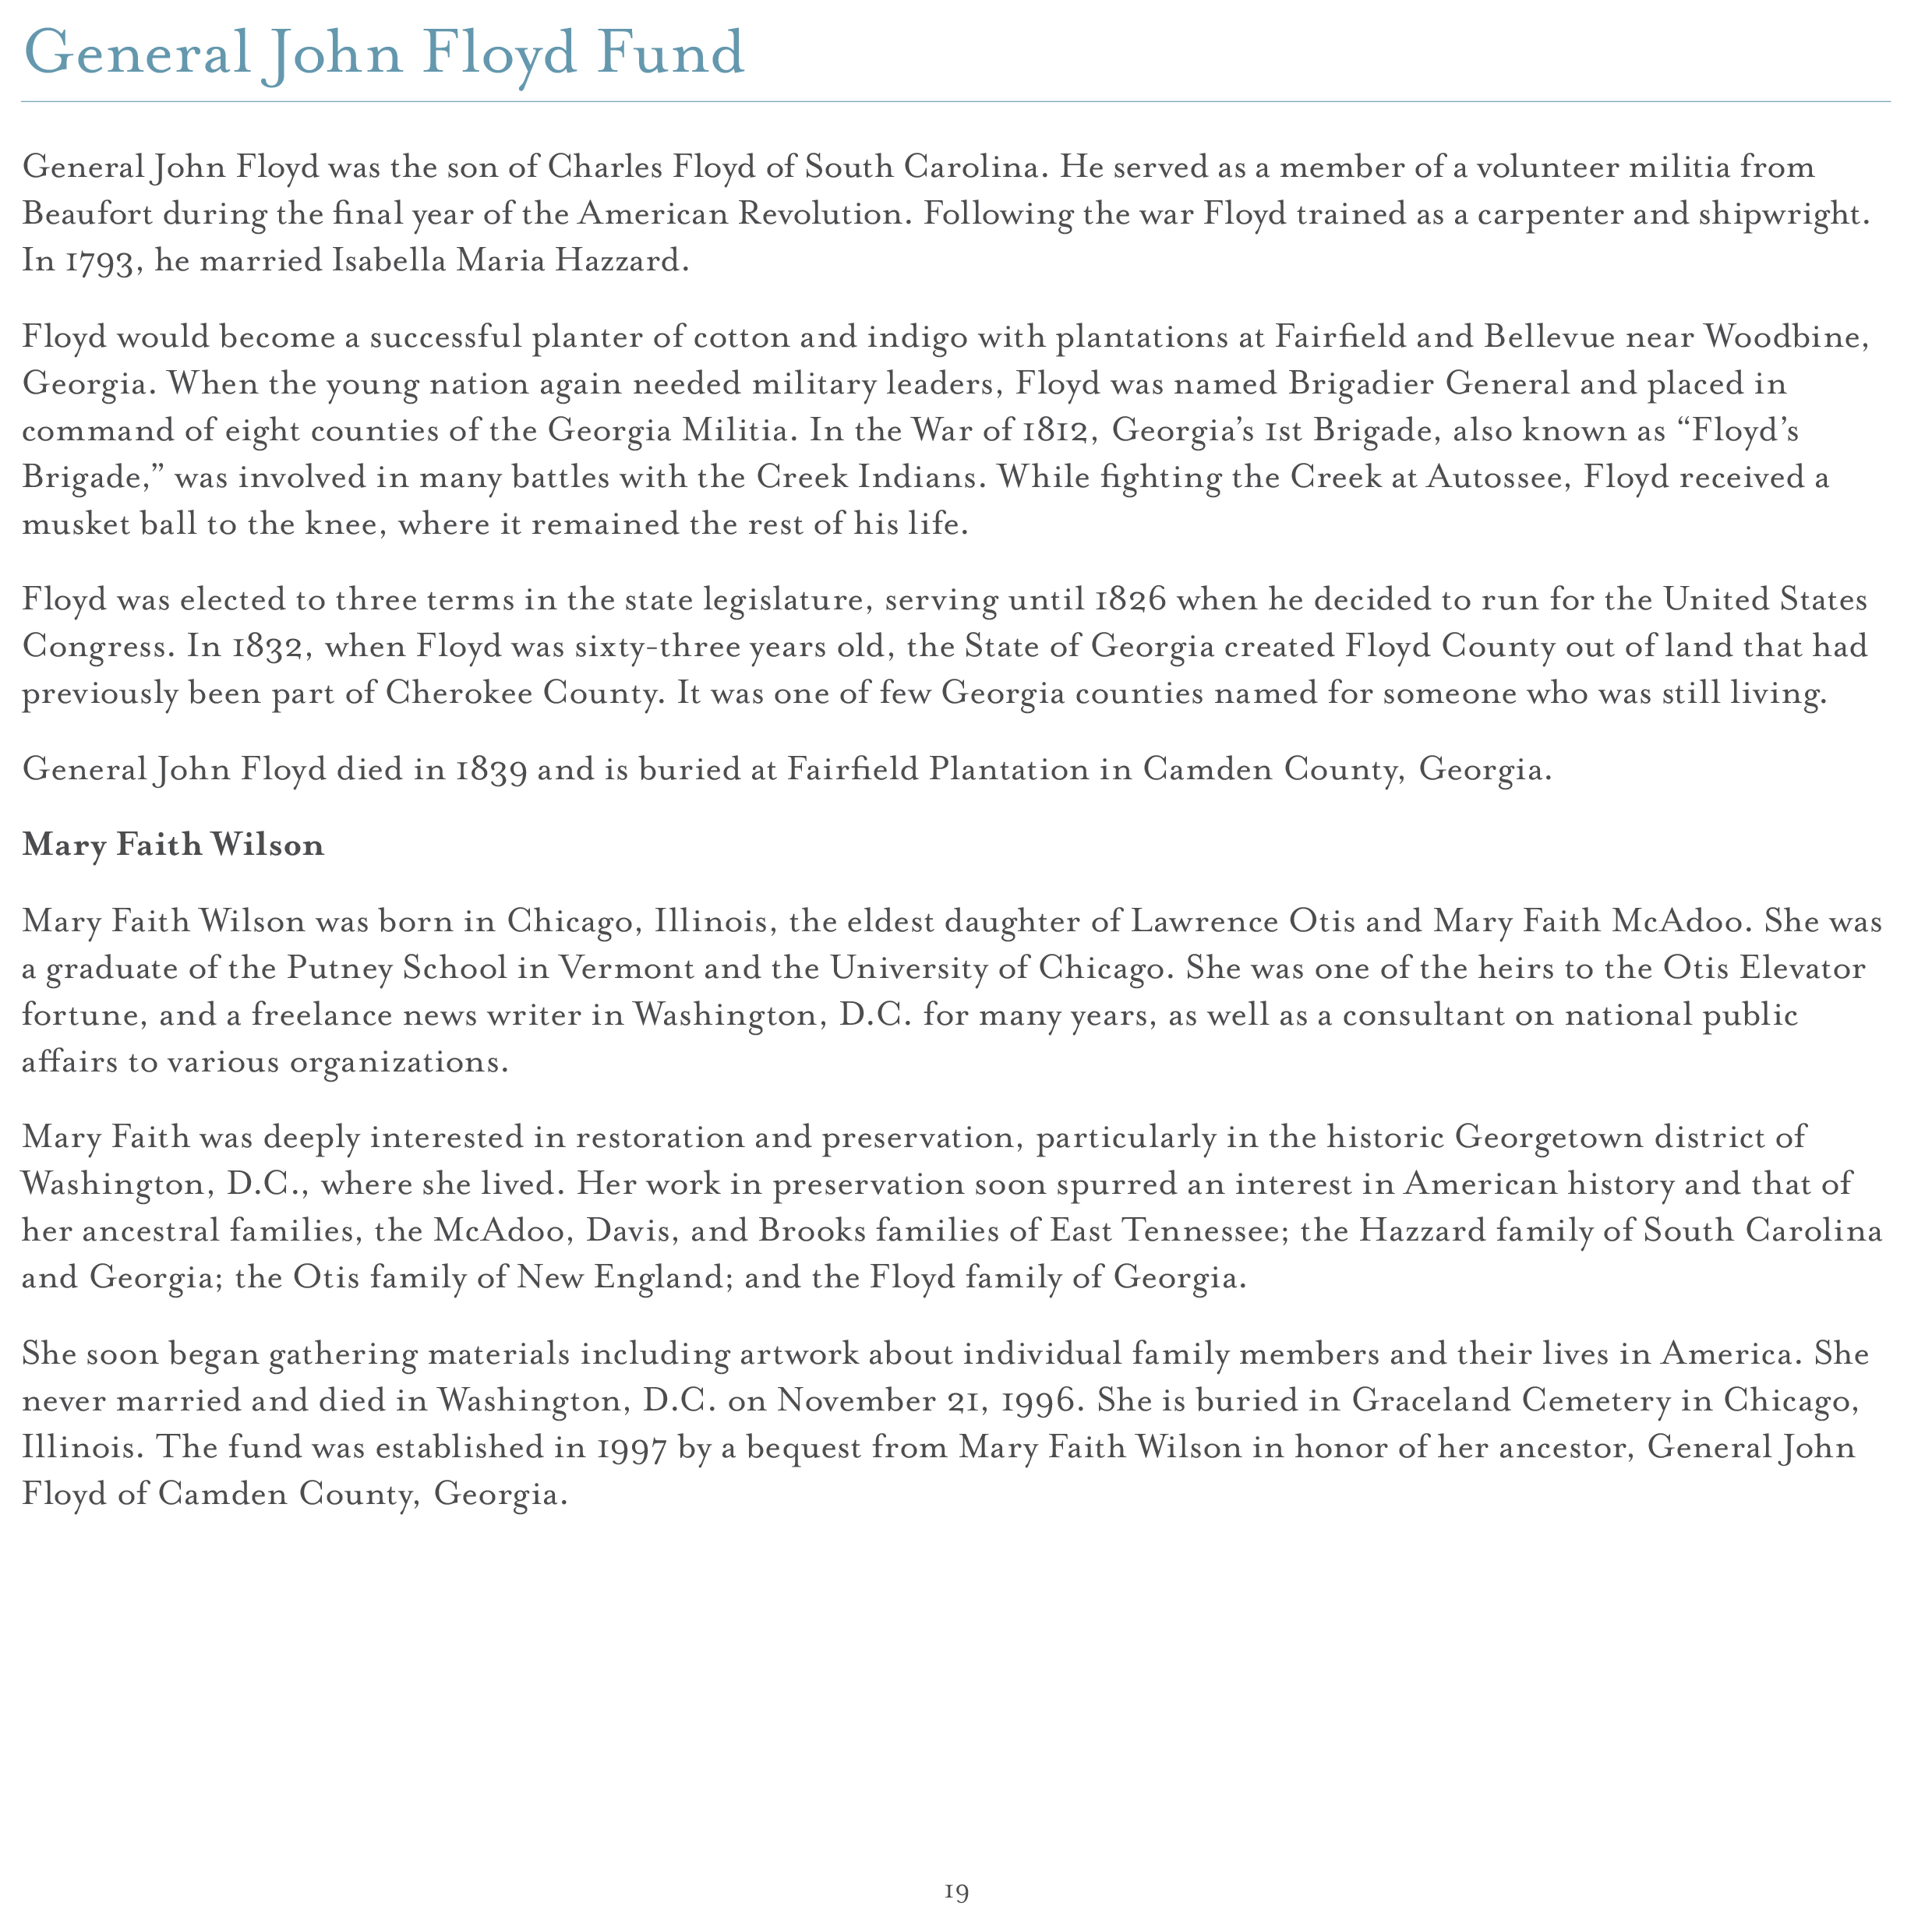 Mutual Fund Accountant Cover Letter Endowment Campaign Georgia Historical Society